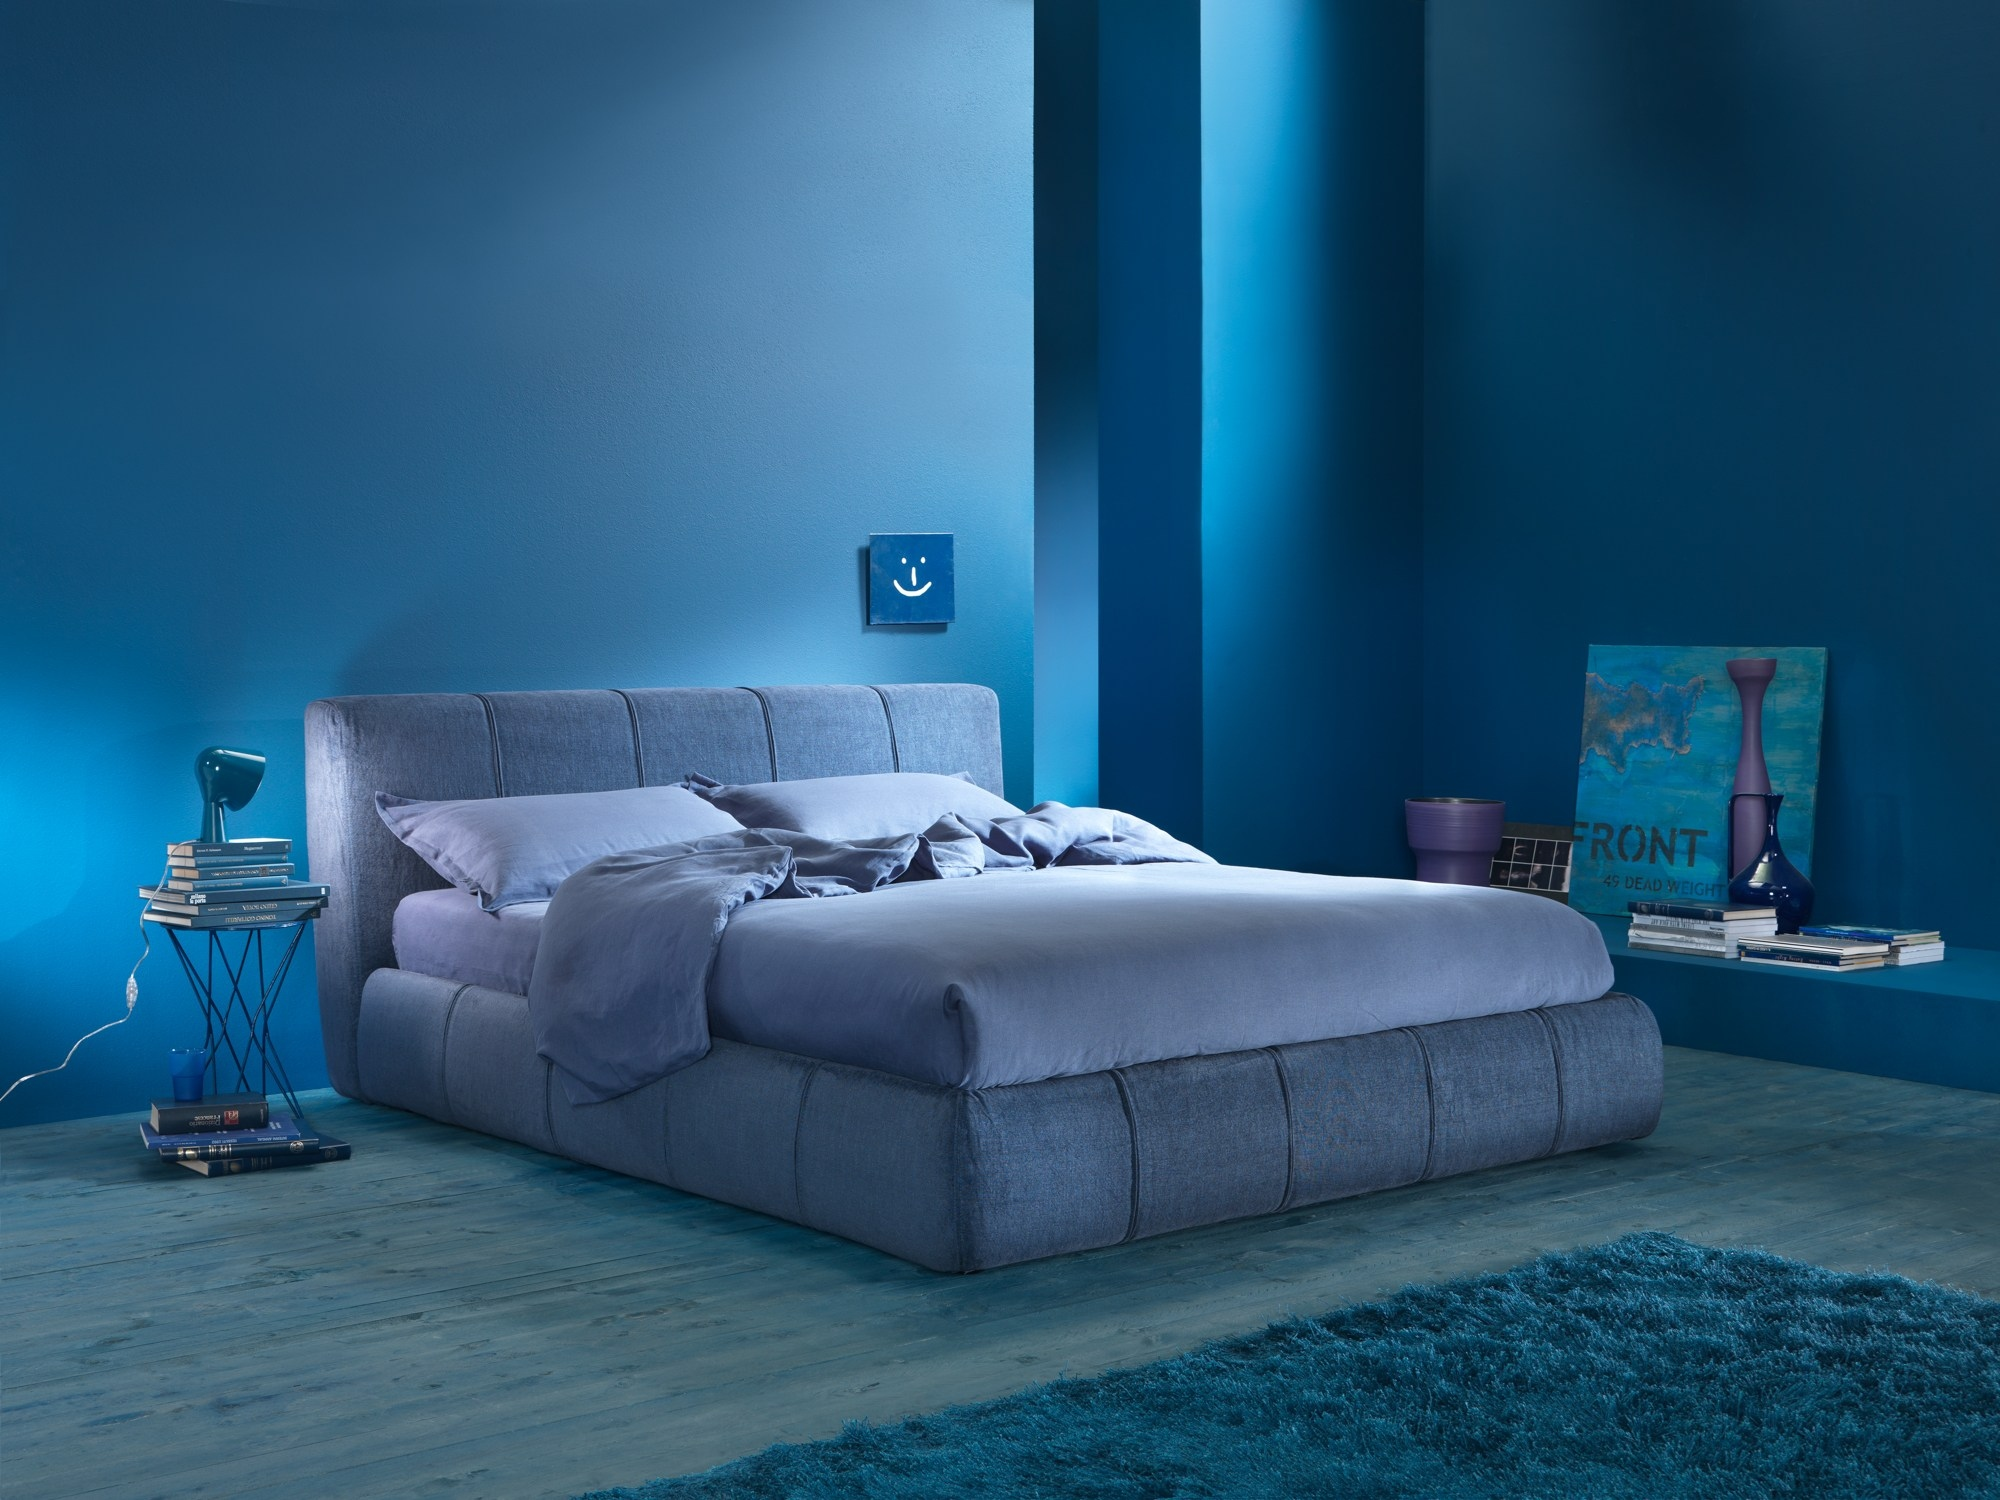 Merveilleux Cool And Modern. The Blue Bedroom ...